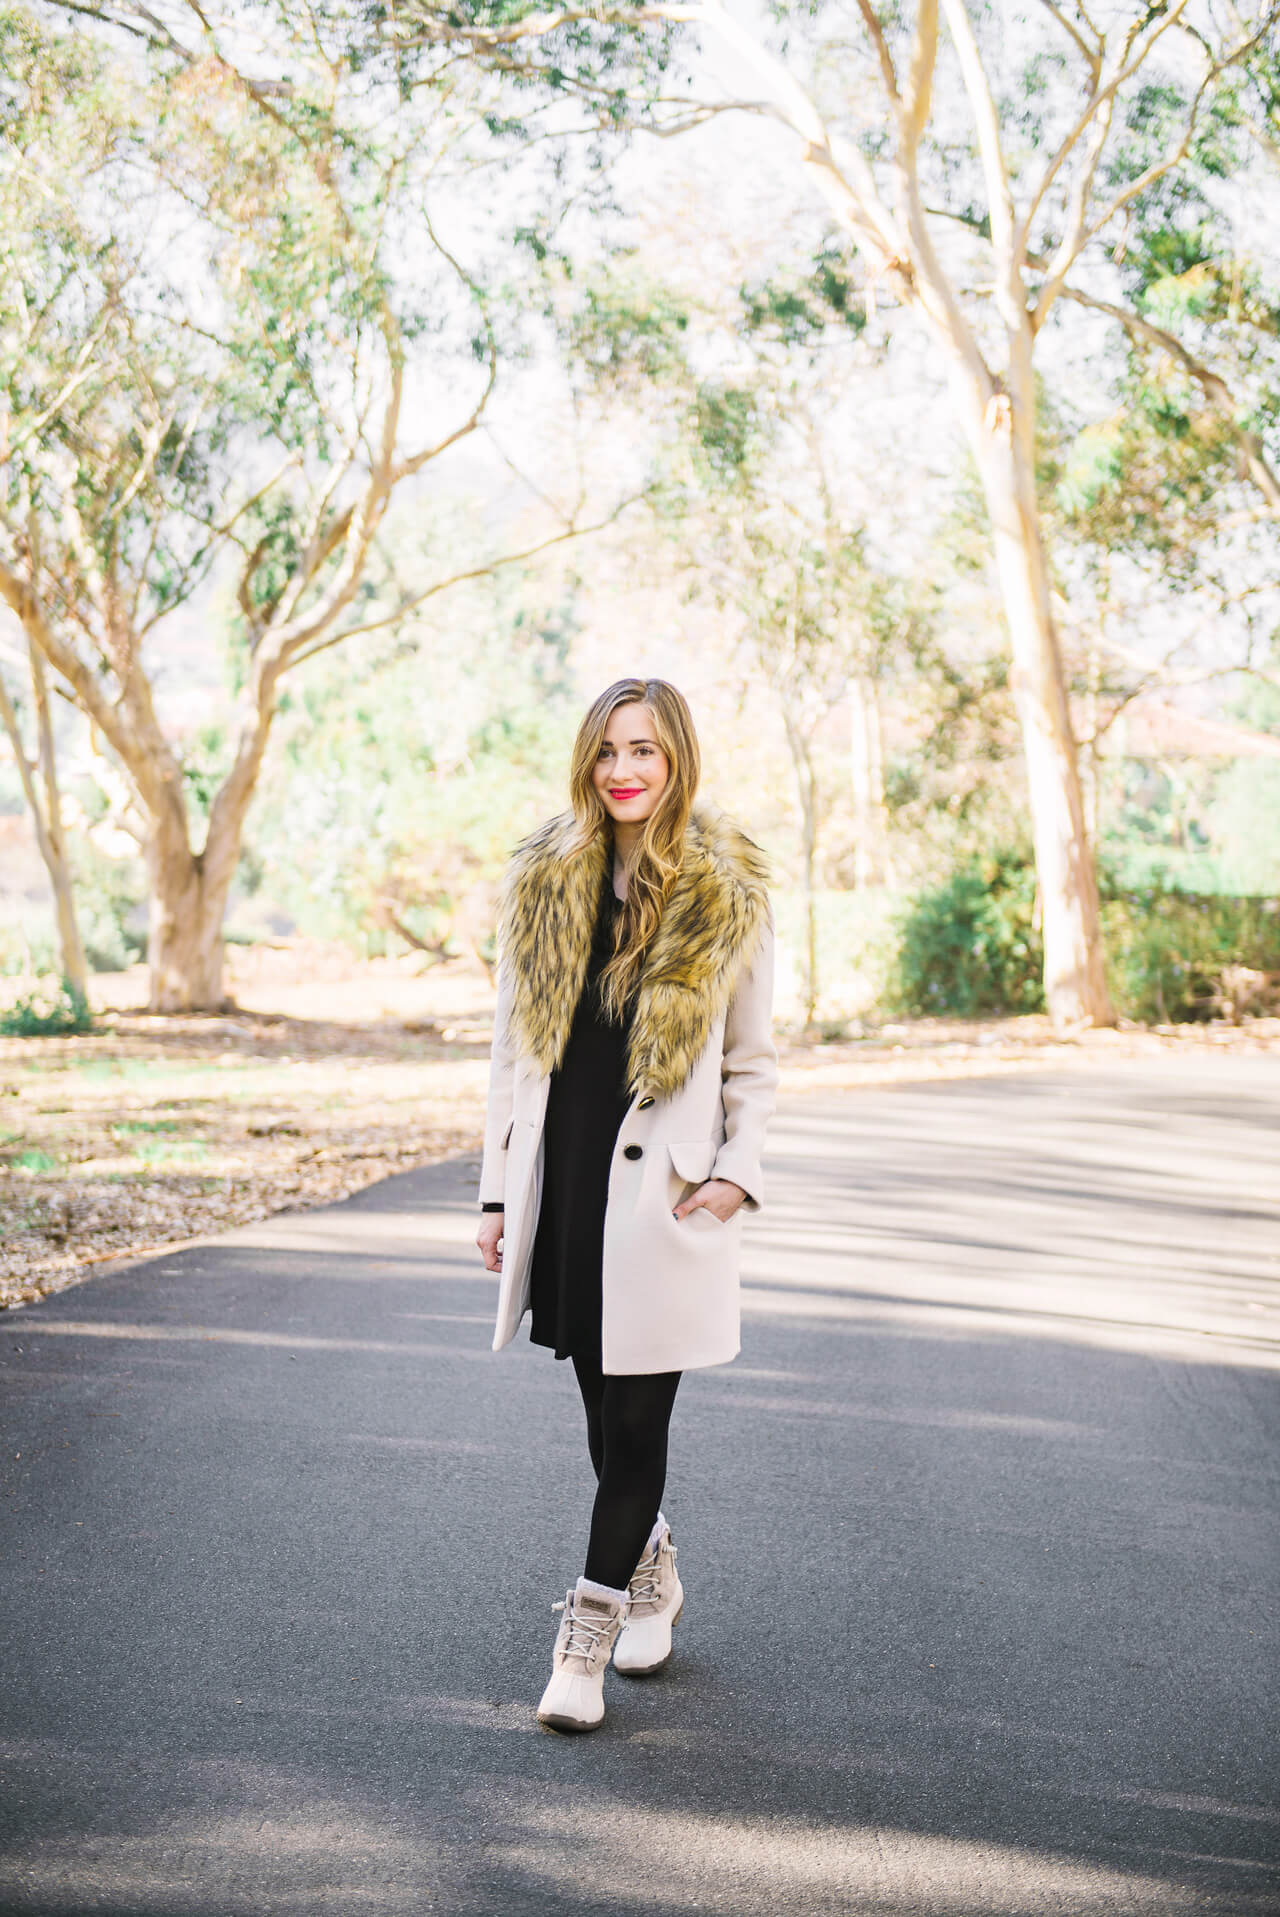 dressing up duck boots with a dress and coat during winter